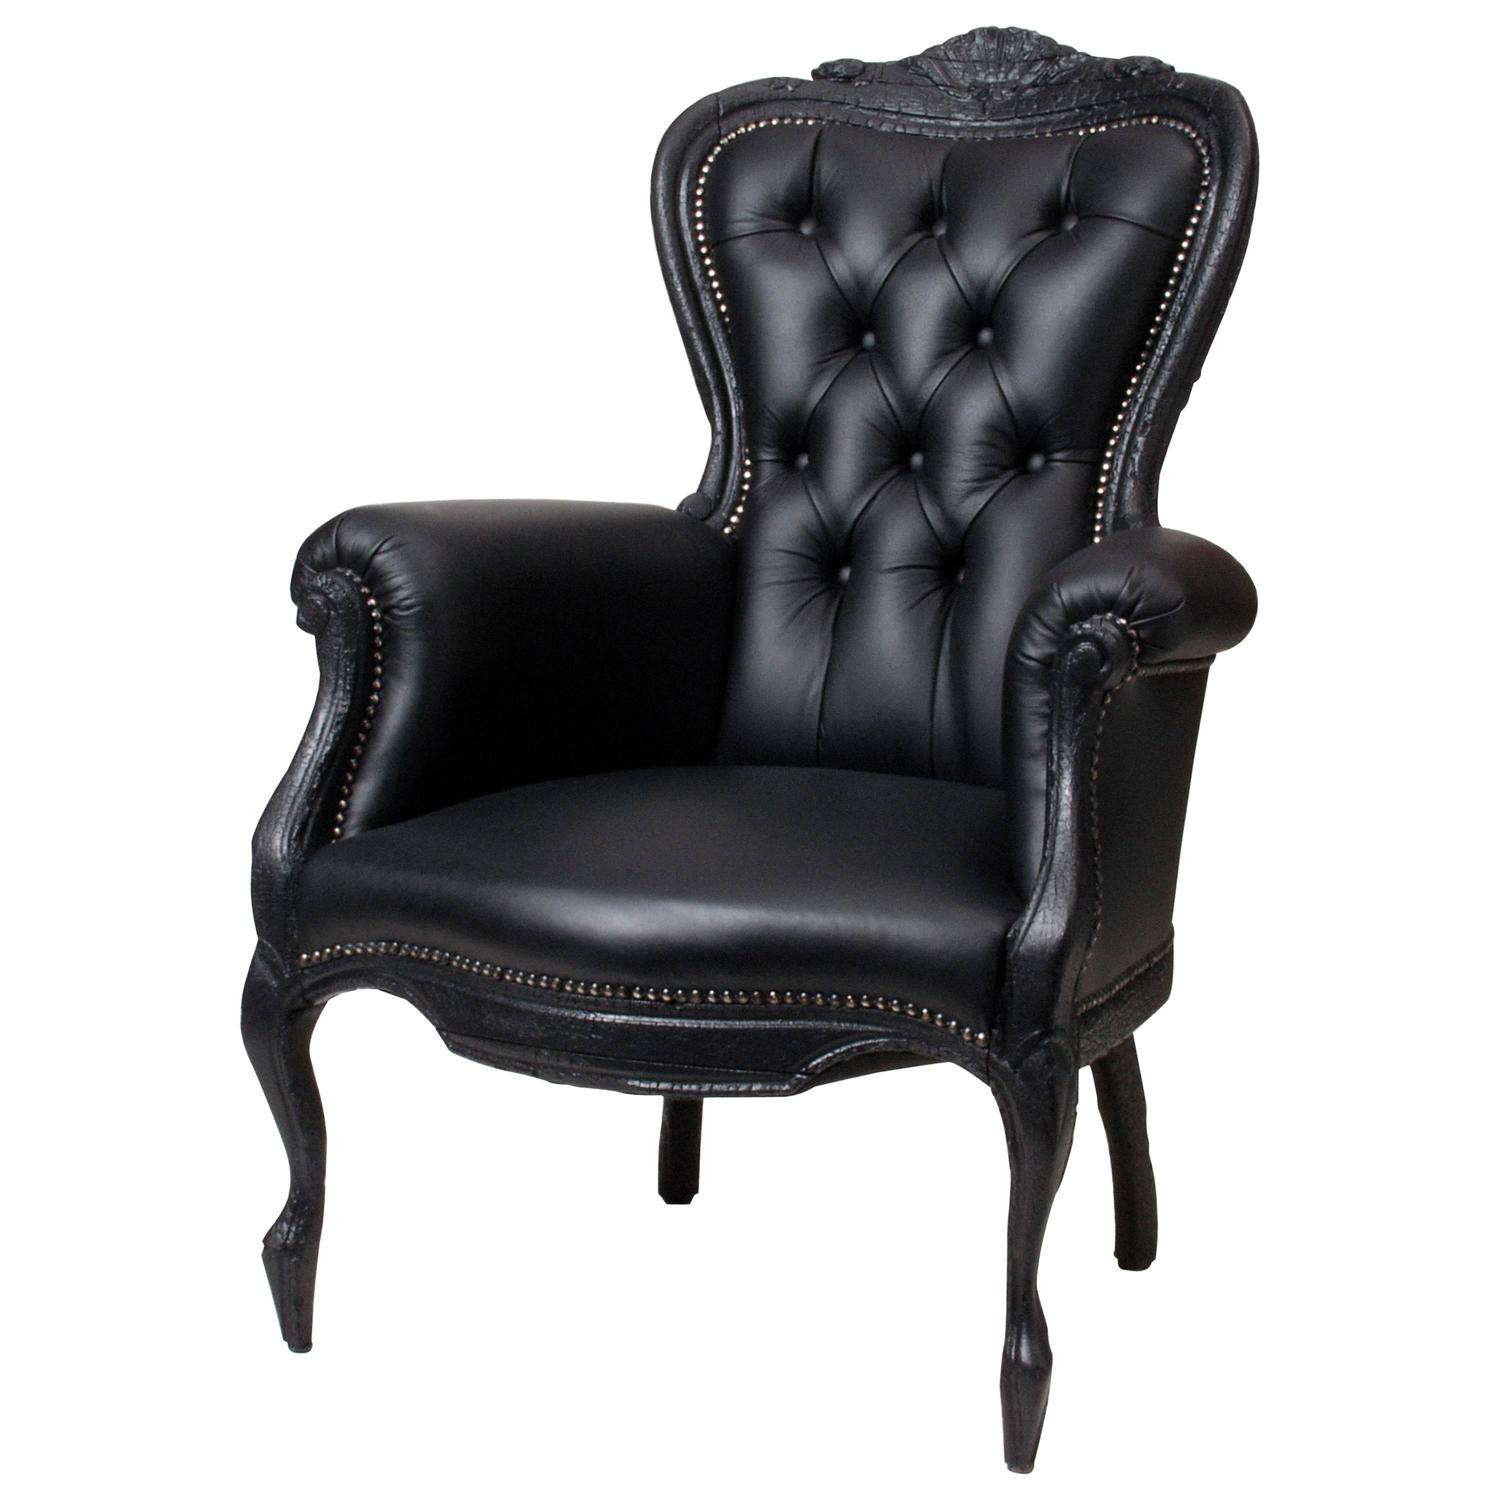 Moooi Smoke Chair in Black Leather Burned Wood and Sealed with